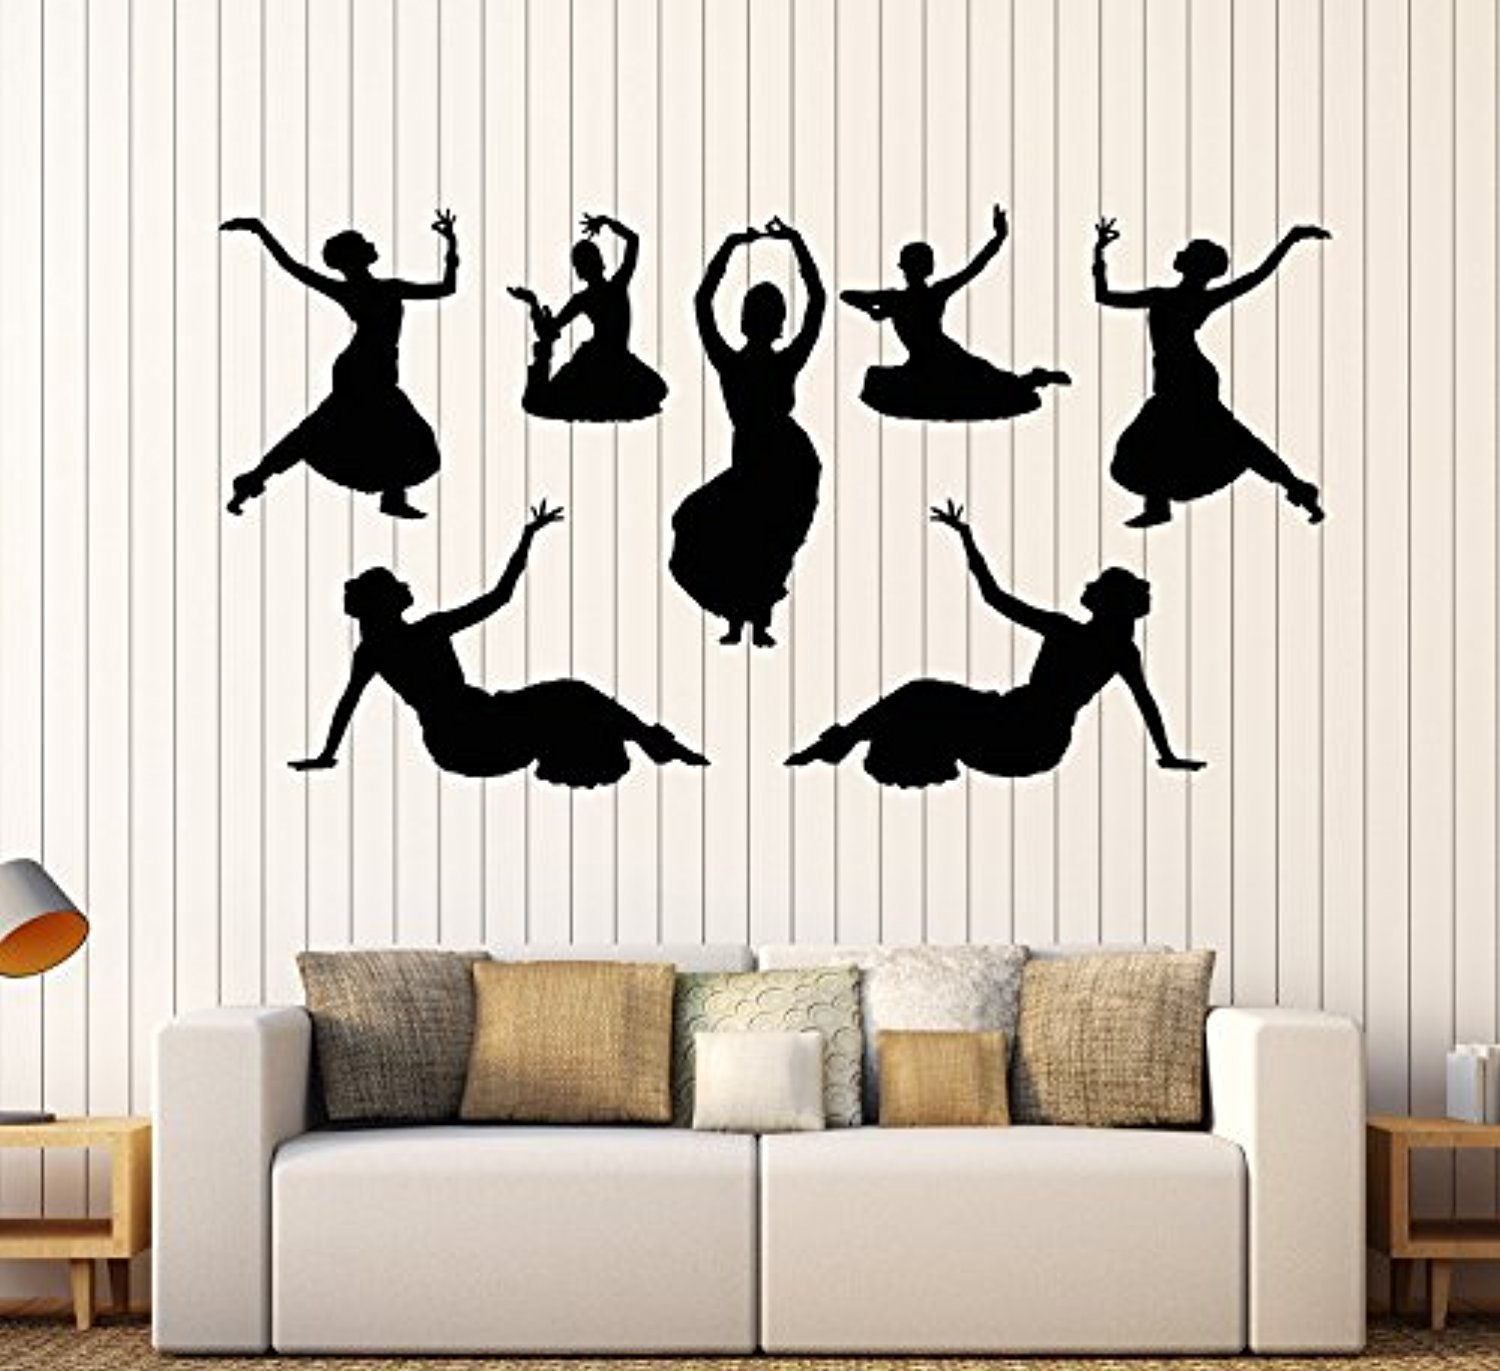 Andre Shop® Vinyl Wall Decal Indian India Dance Dancers Girls Devadasi Hindu Stickers Large Decor1907ig